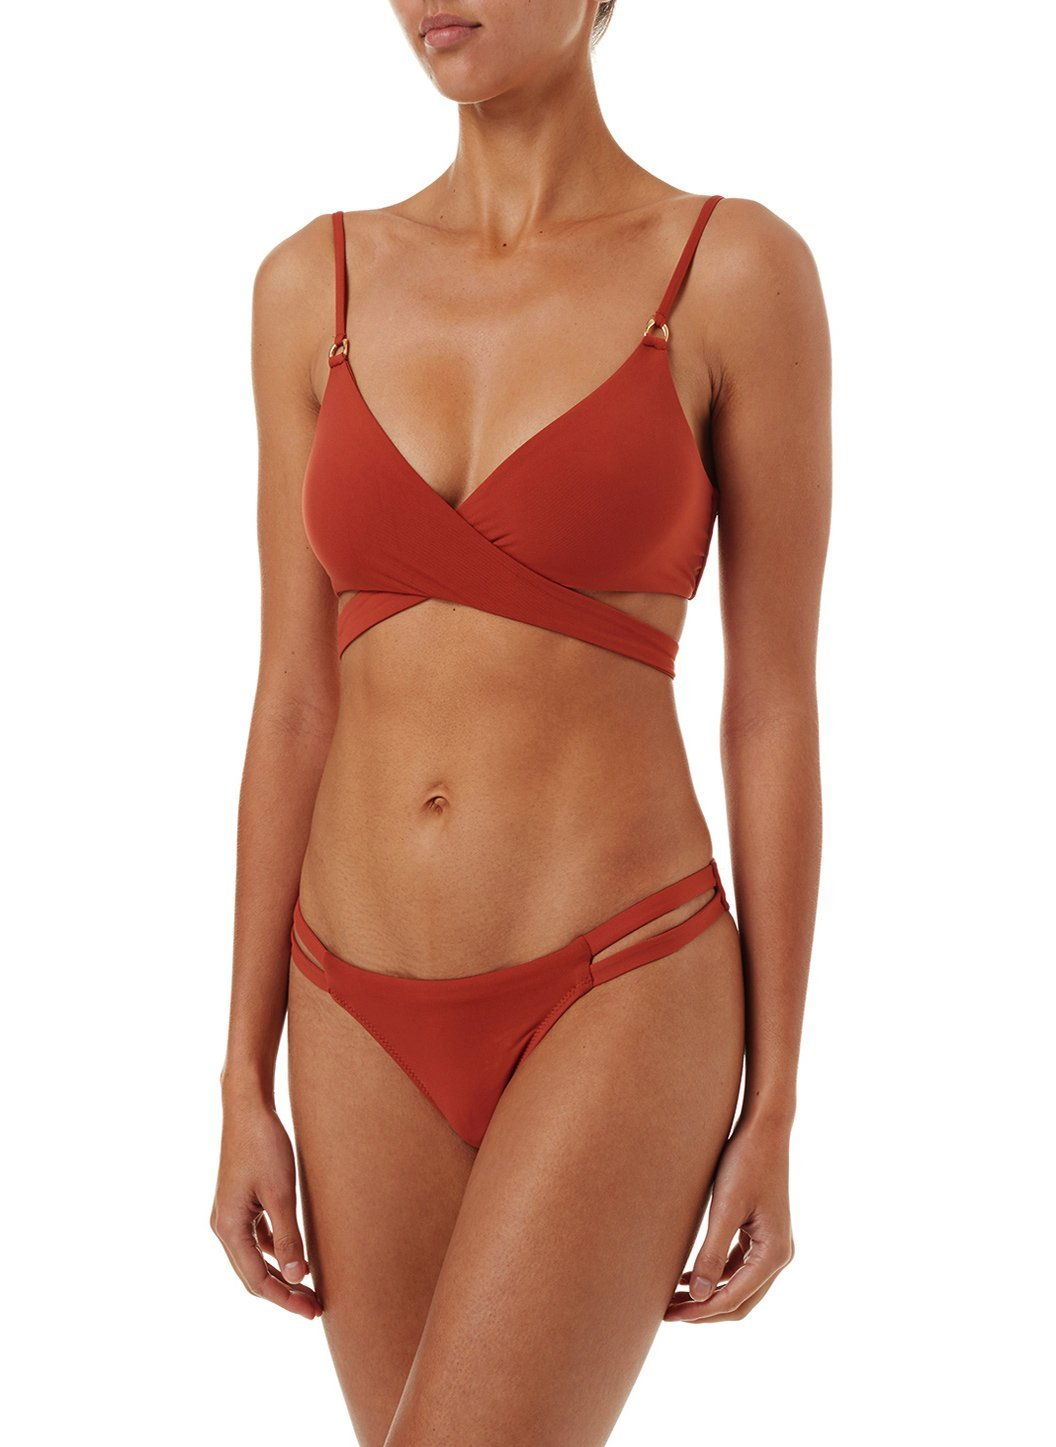 indonesia cinnamon overtheshoulder wrap bikini 2019 F